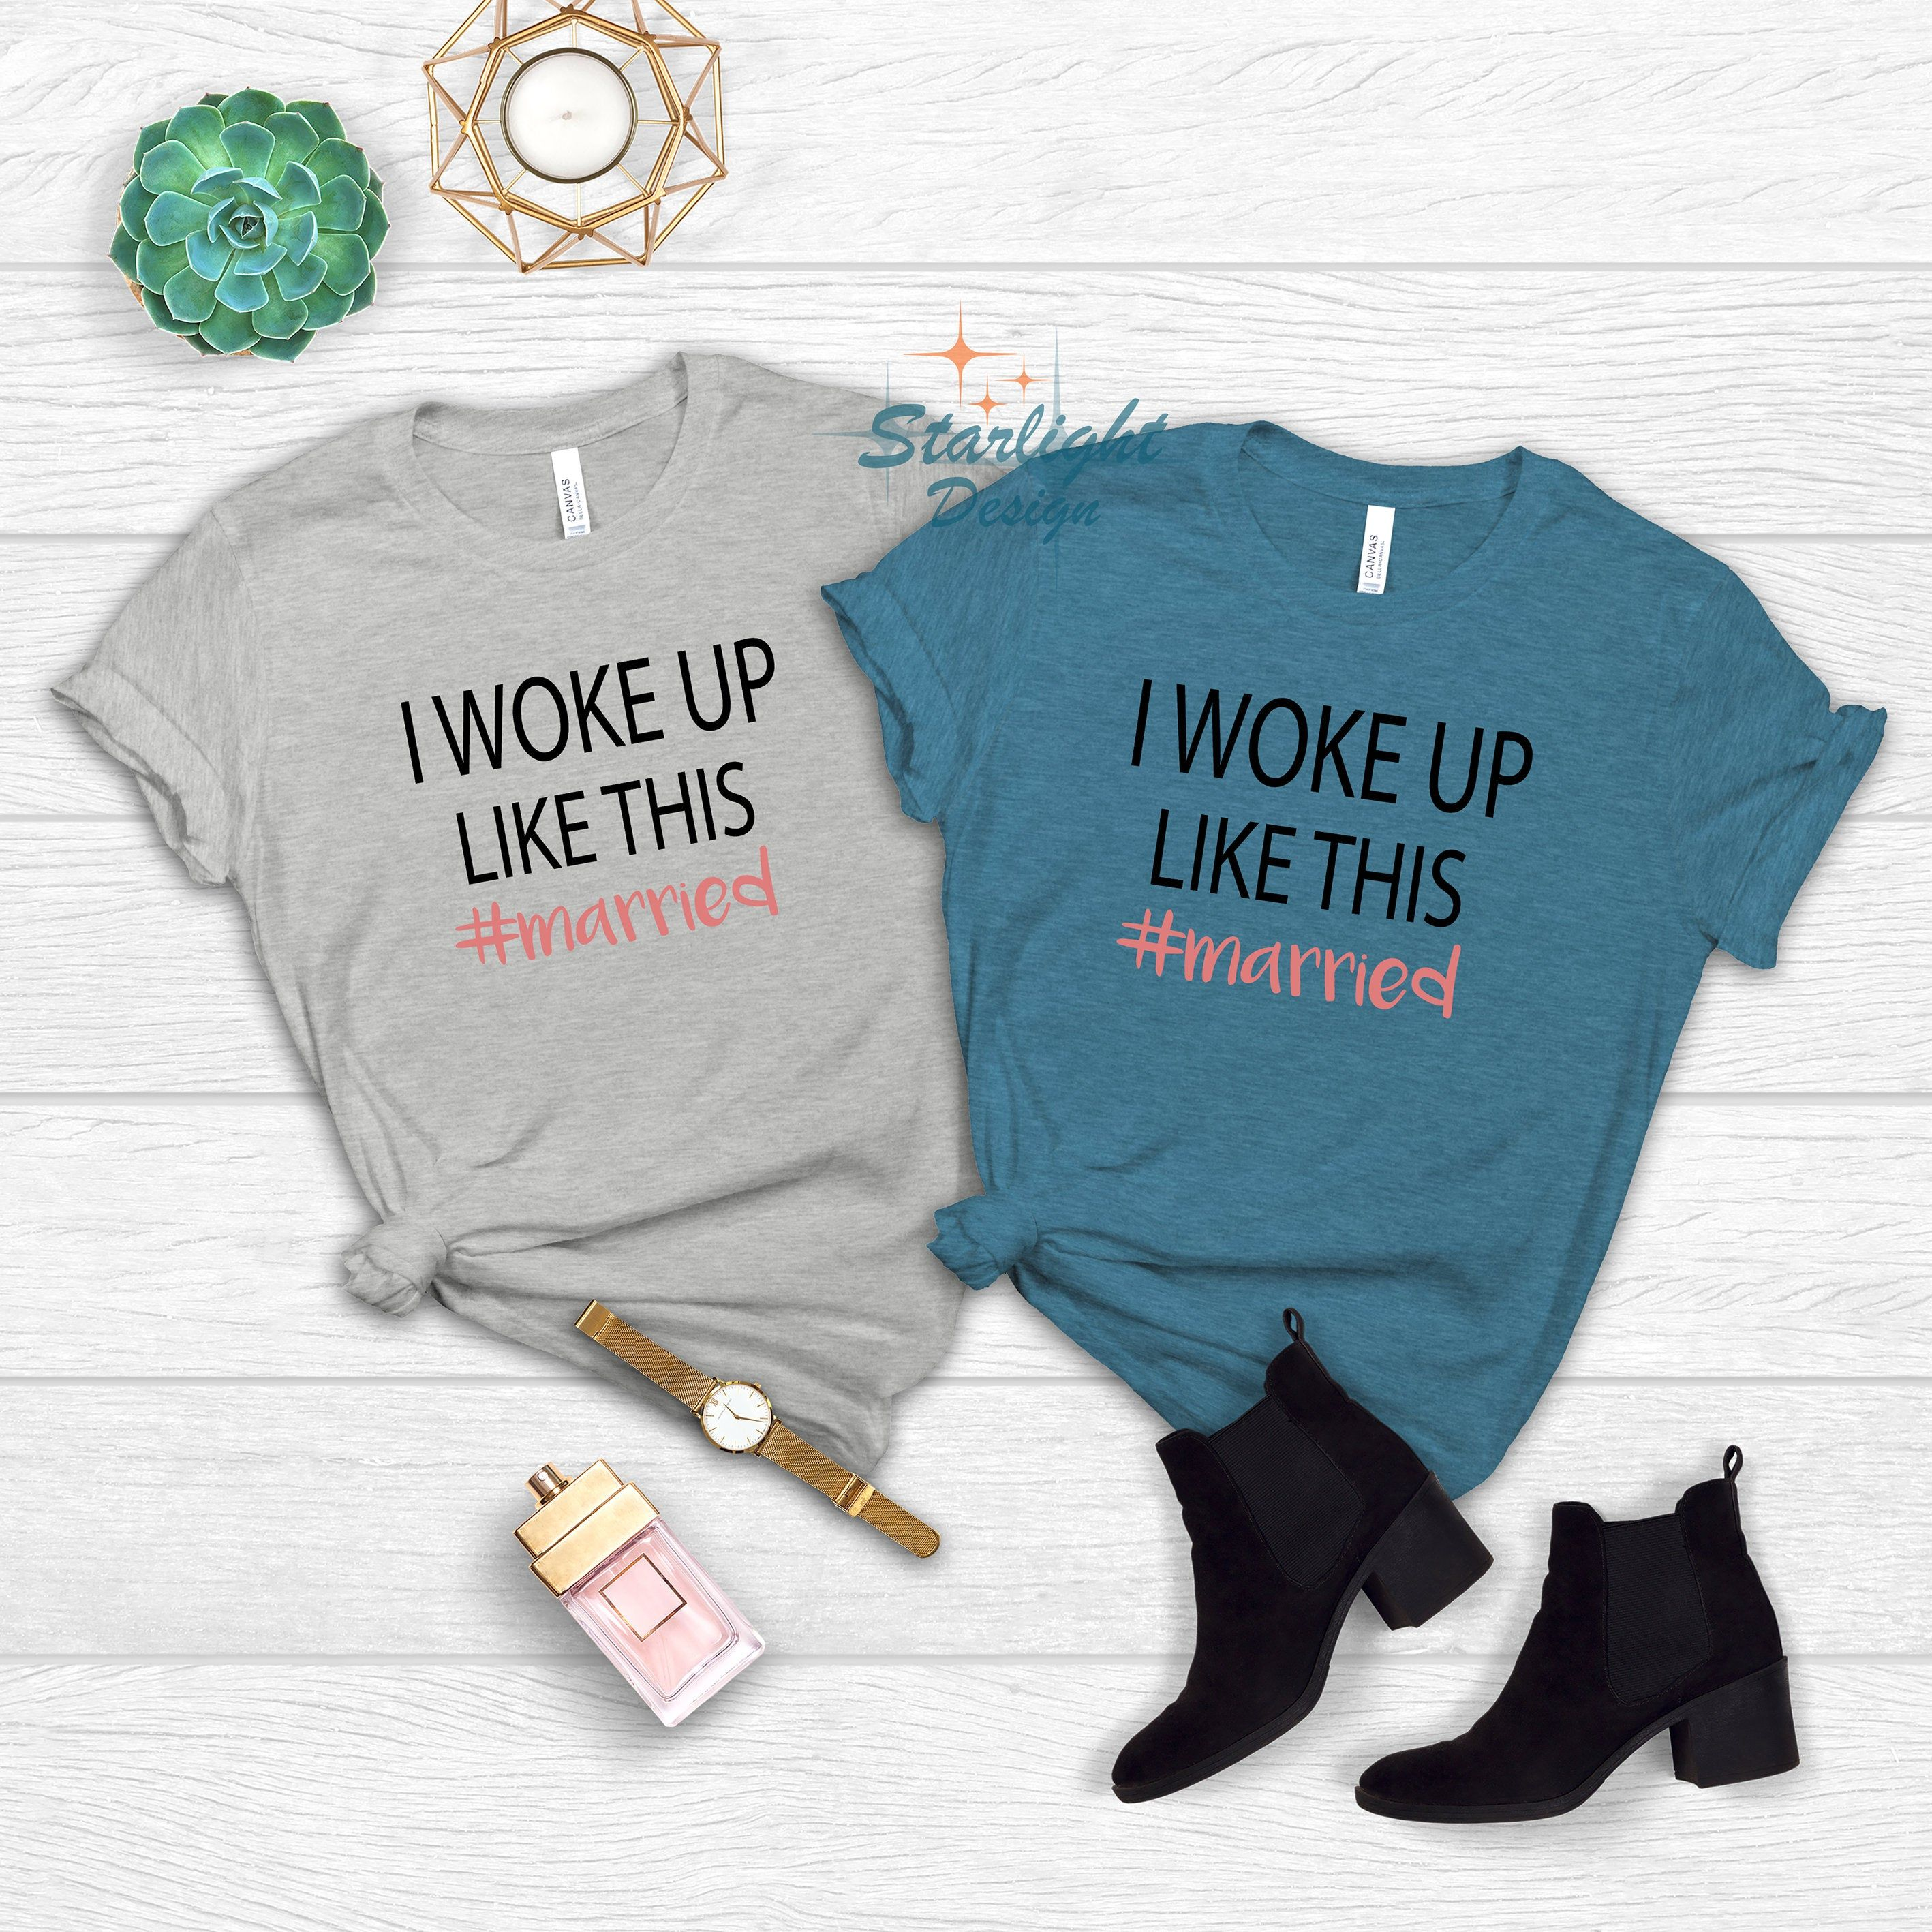 I Woke Up Like This Married Tshirt, Funny Couples Tee, Shirt For Couples, Matching Couple Tshirts, Gift For Couples, Couple Outfits